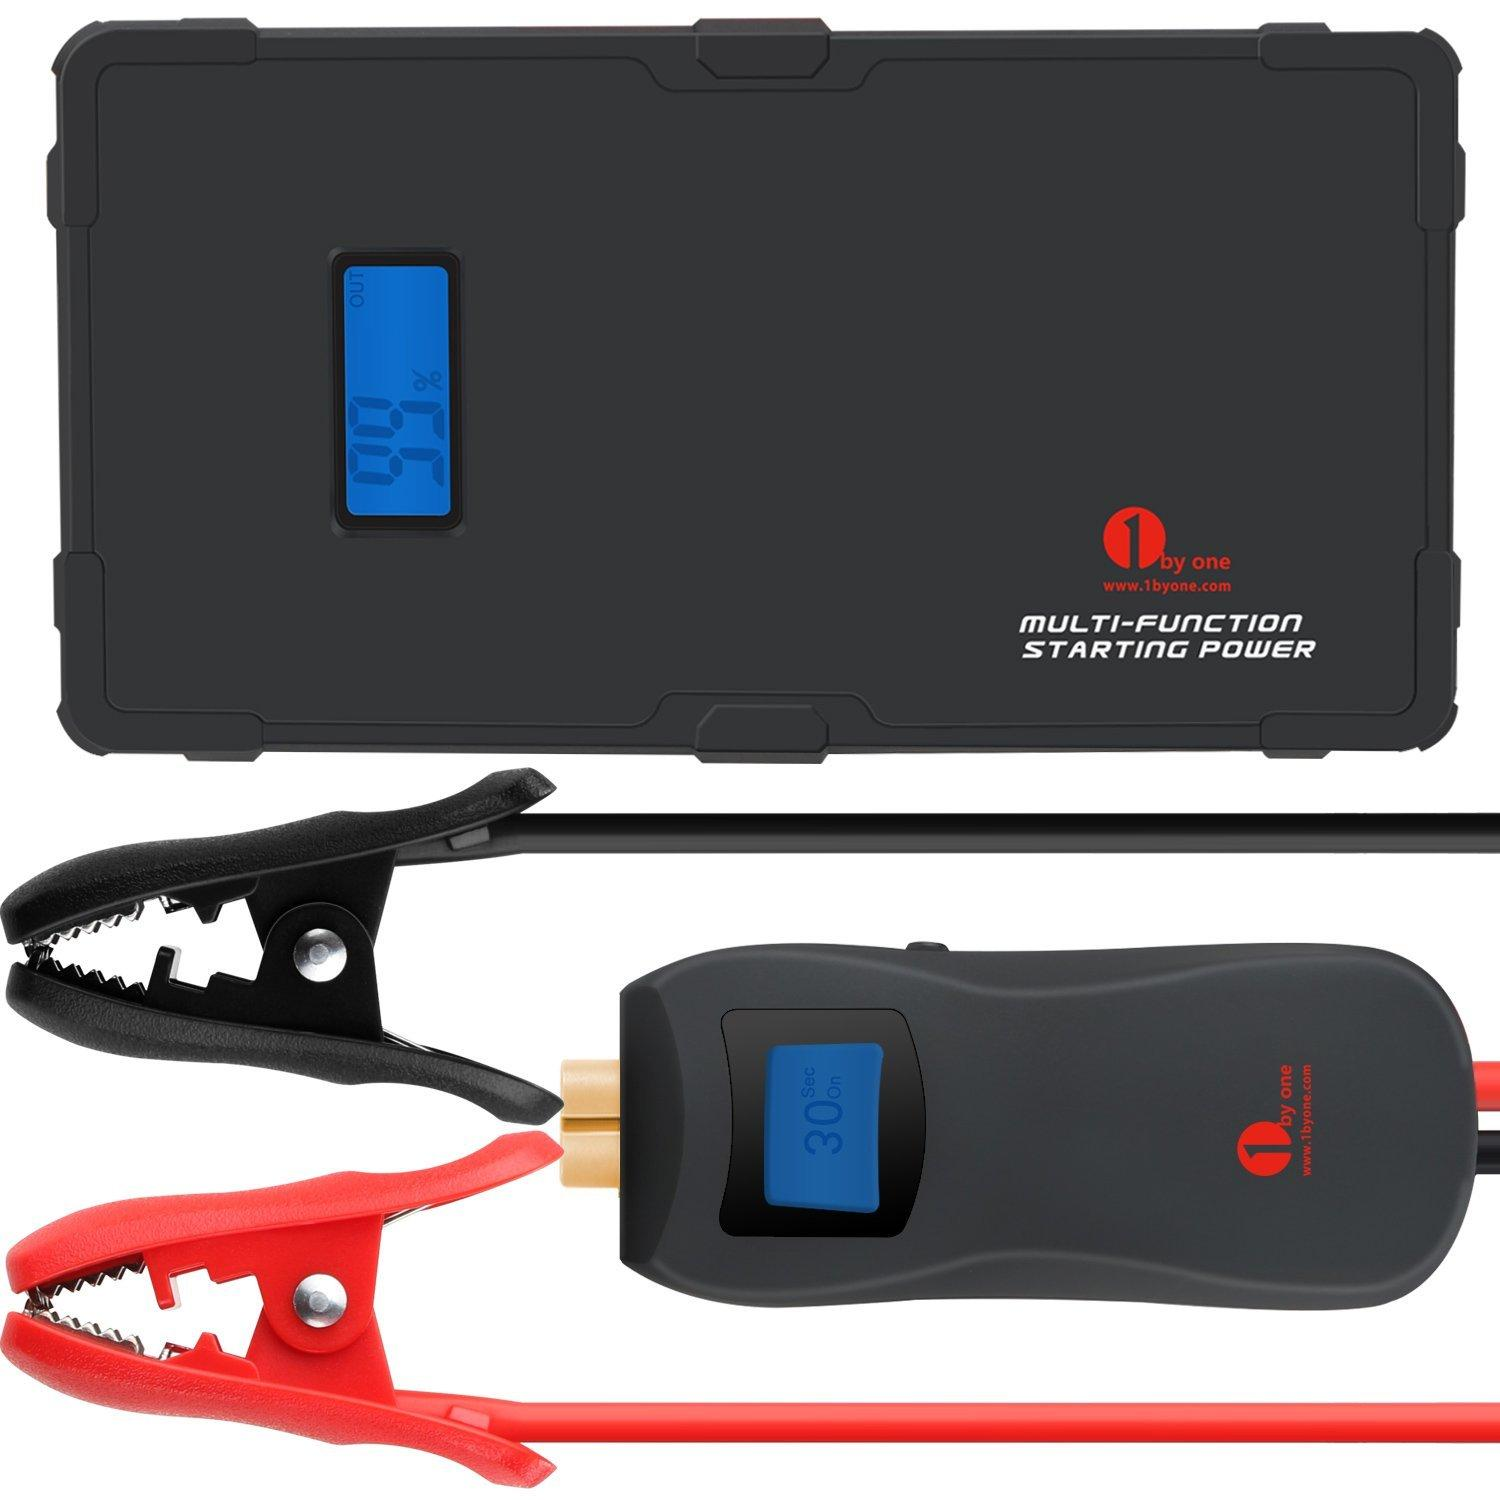 $50.99 1byone 9000mAh 12V Multi-Function Smart Portable Car Jump Starter Powerbank